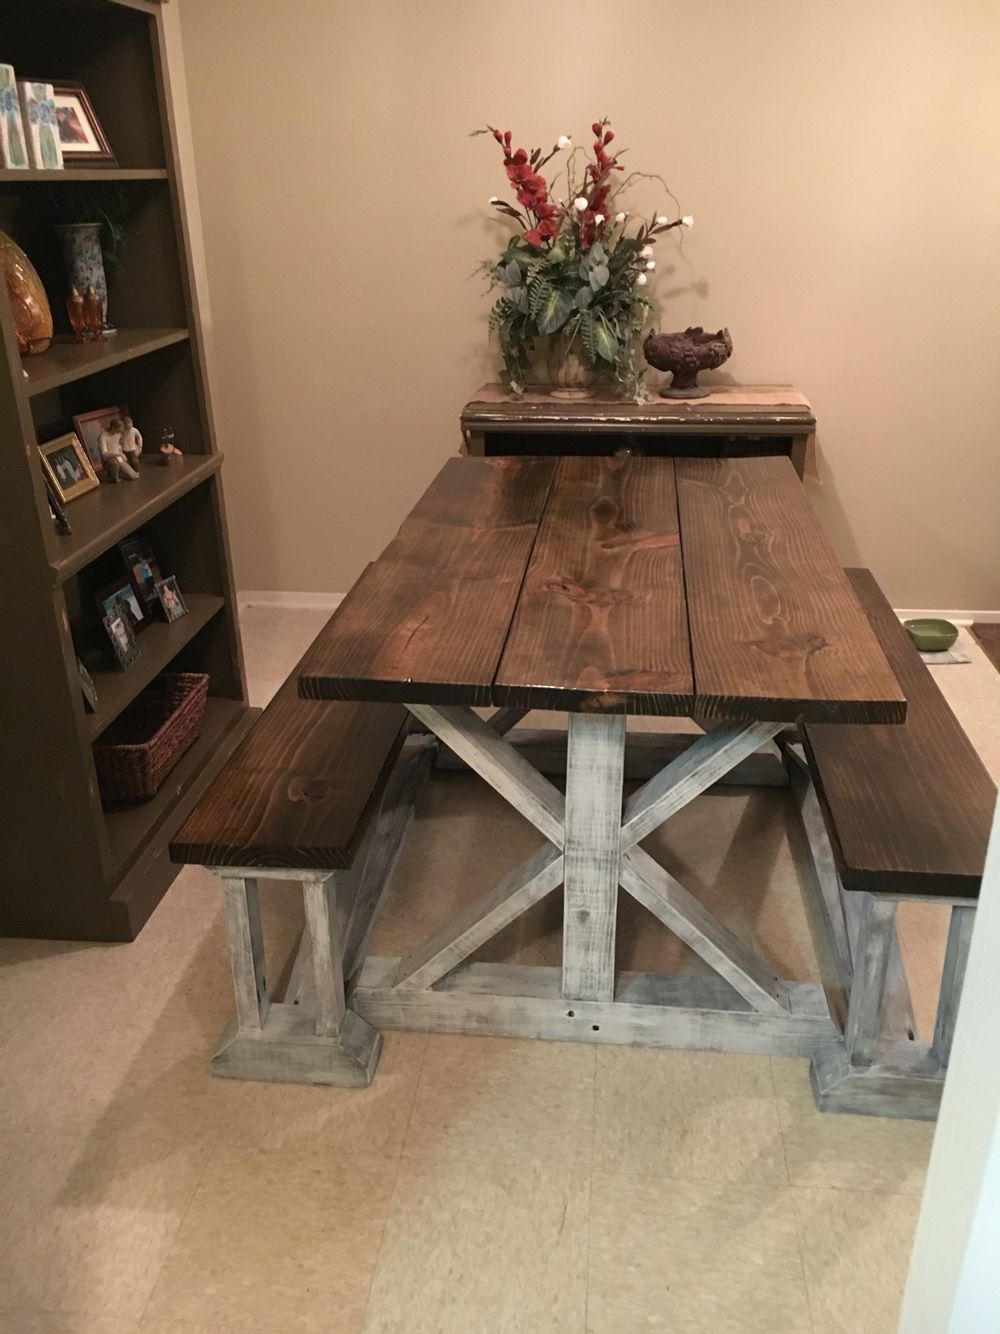 handmade farmhouse table with benches handmade furniture -  http://amzn.to/2iwpdj4 VFLIMZN